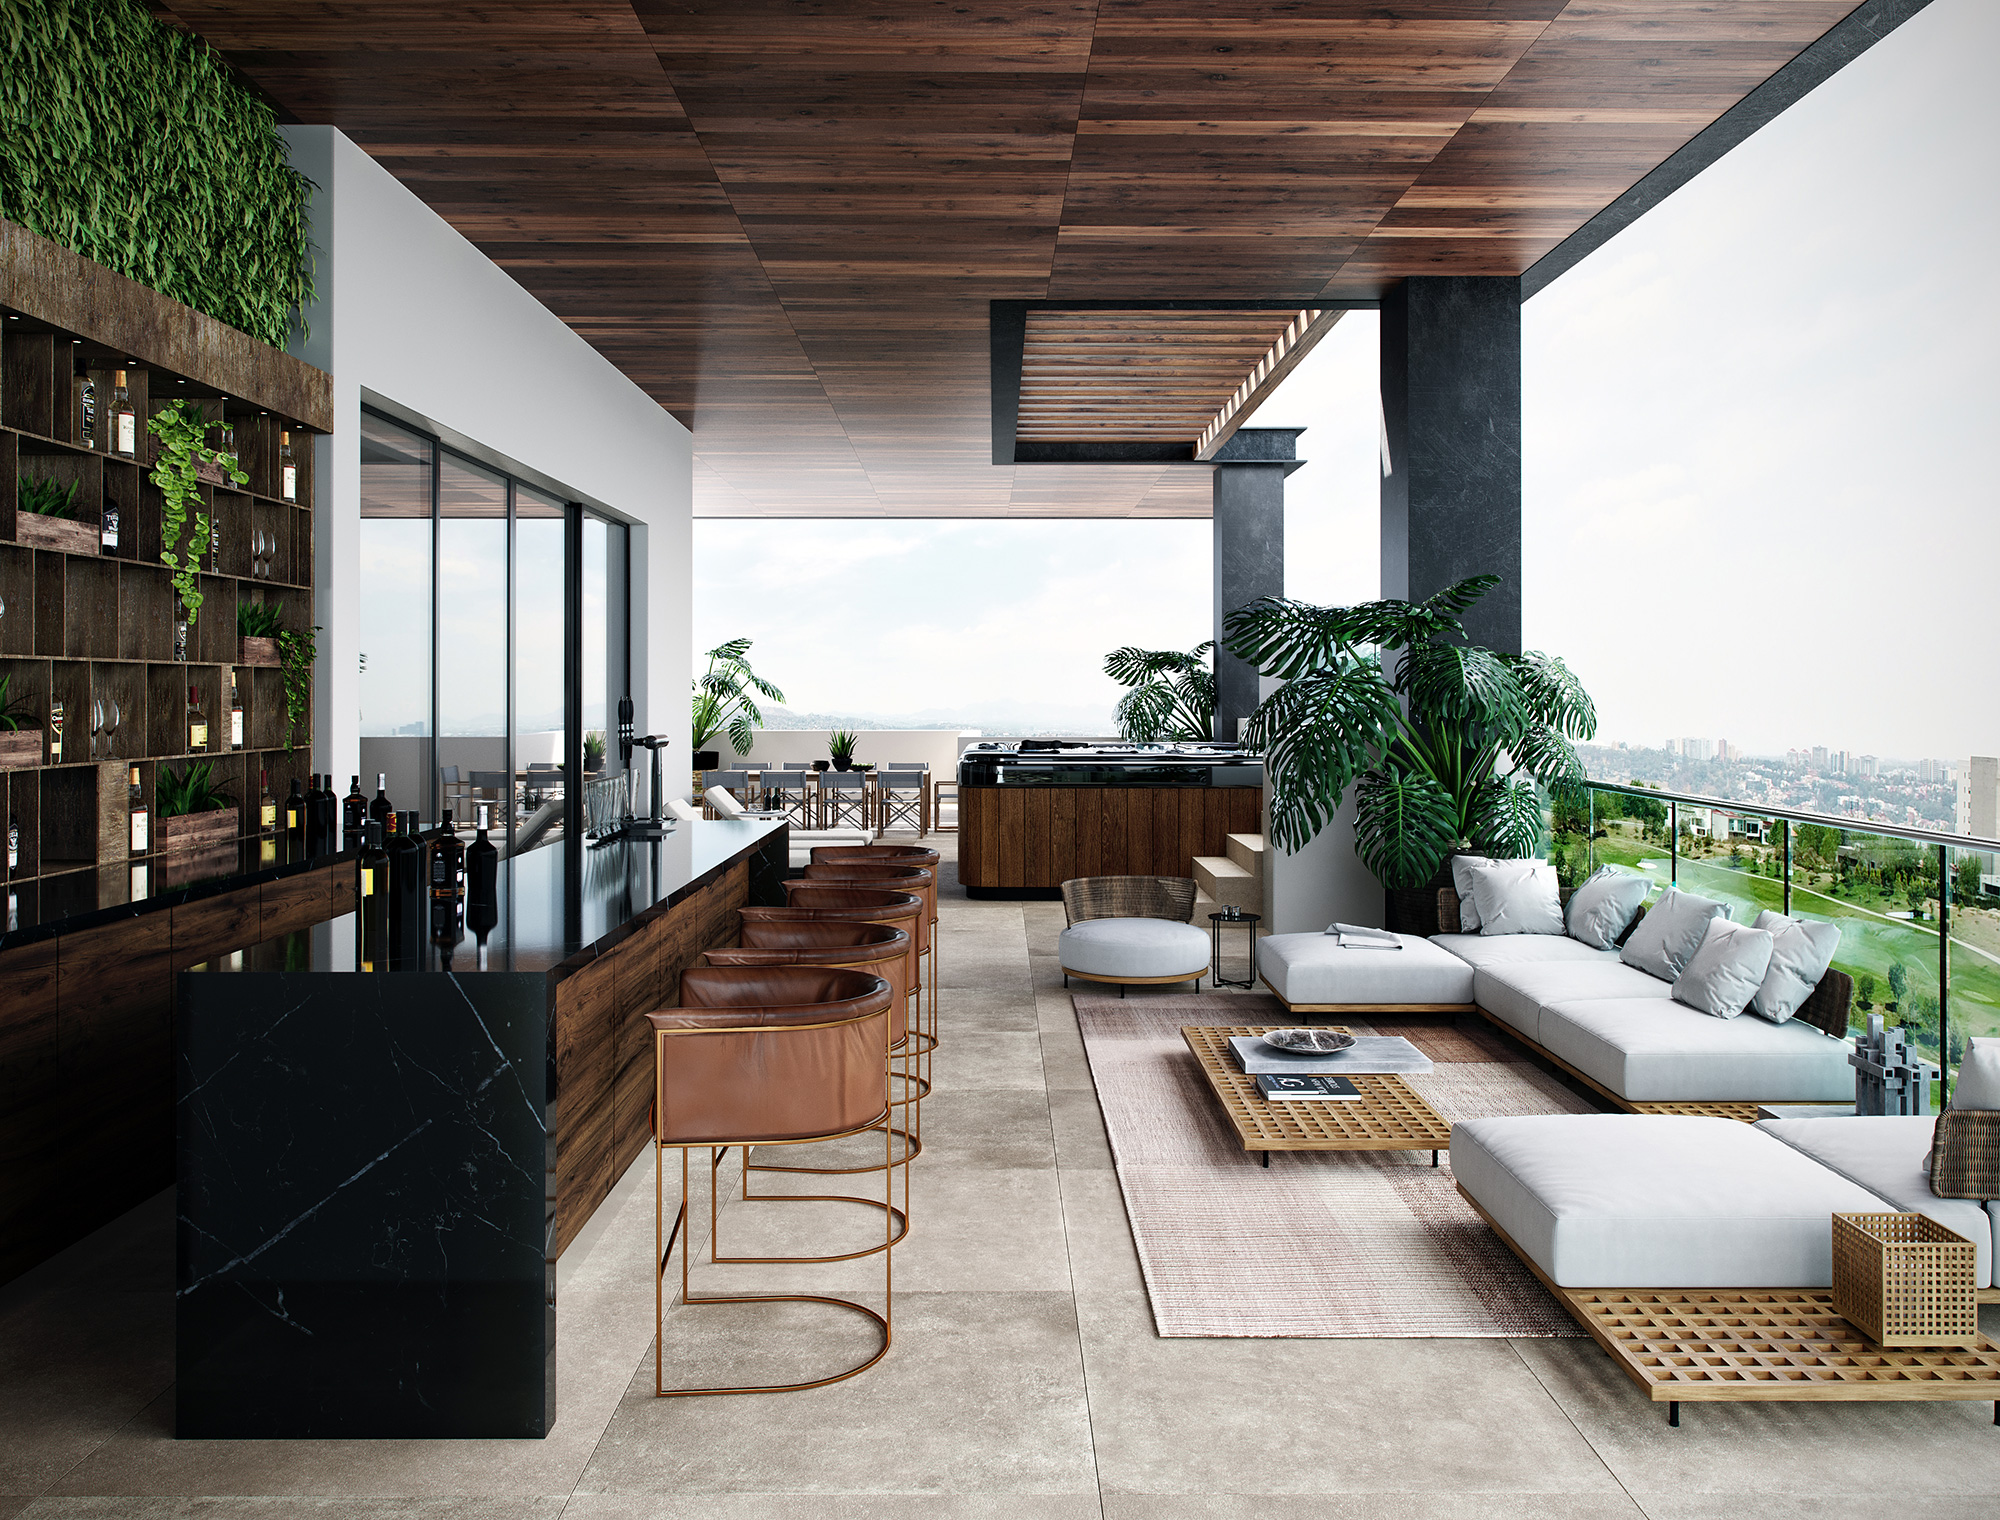 ROMA BOSQUE REAL - ROOF PENTHOUSE B